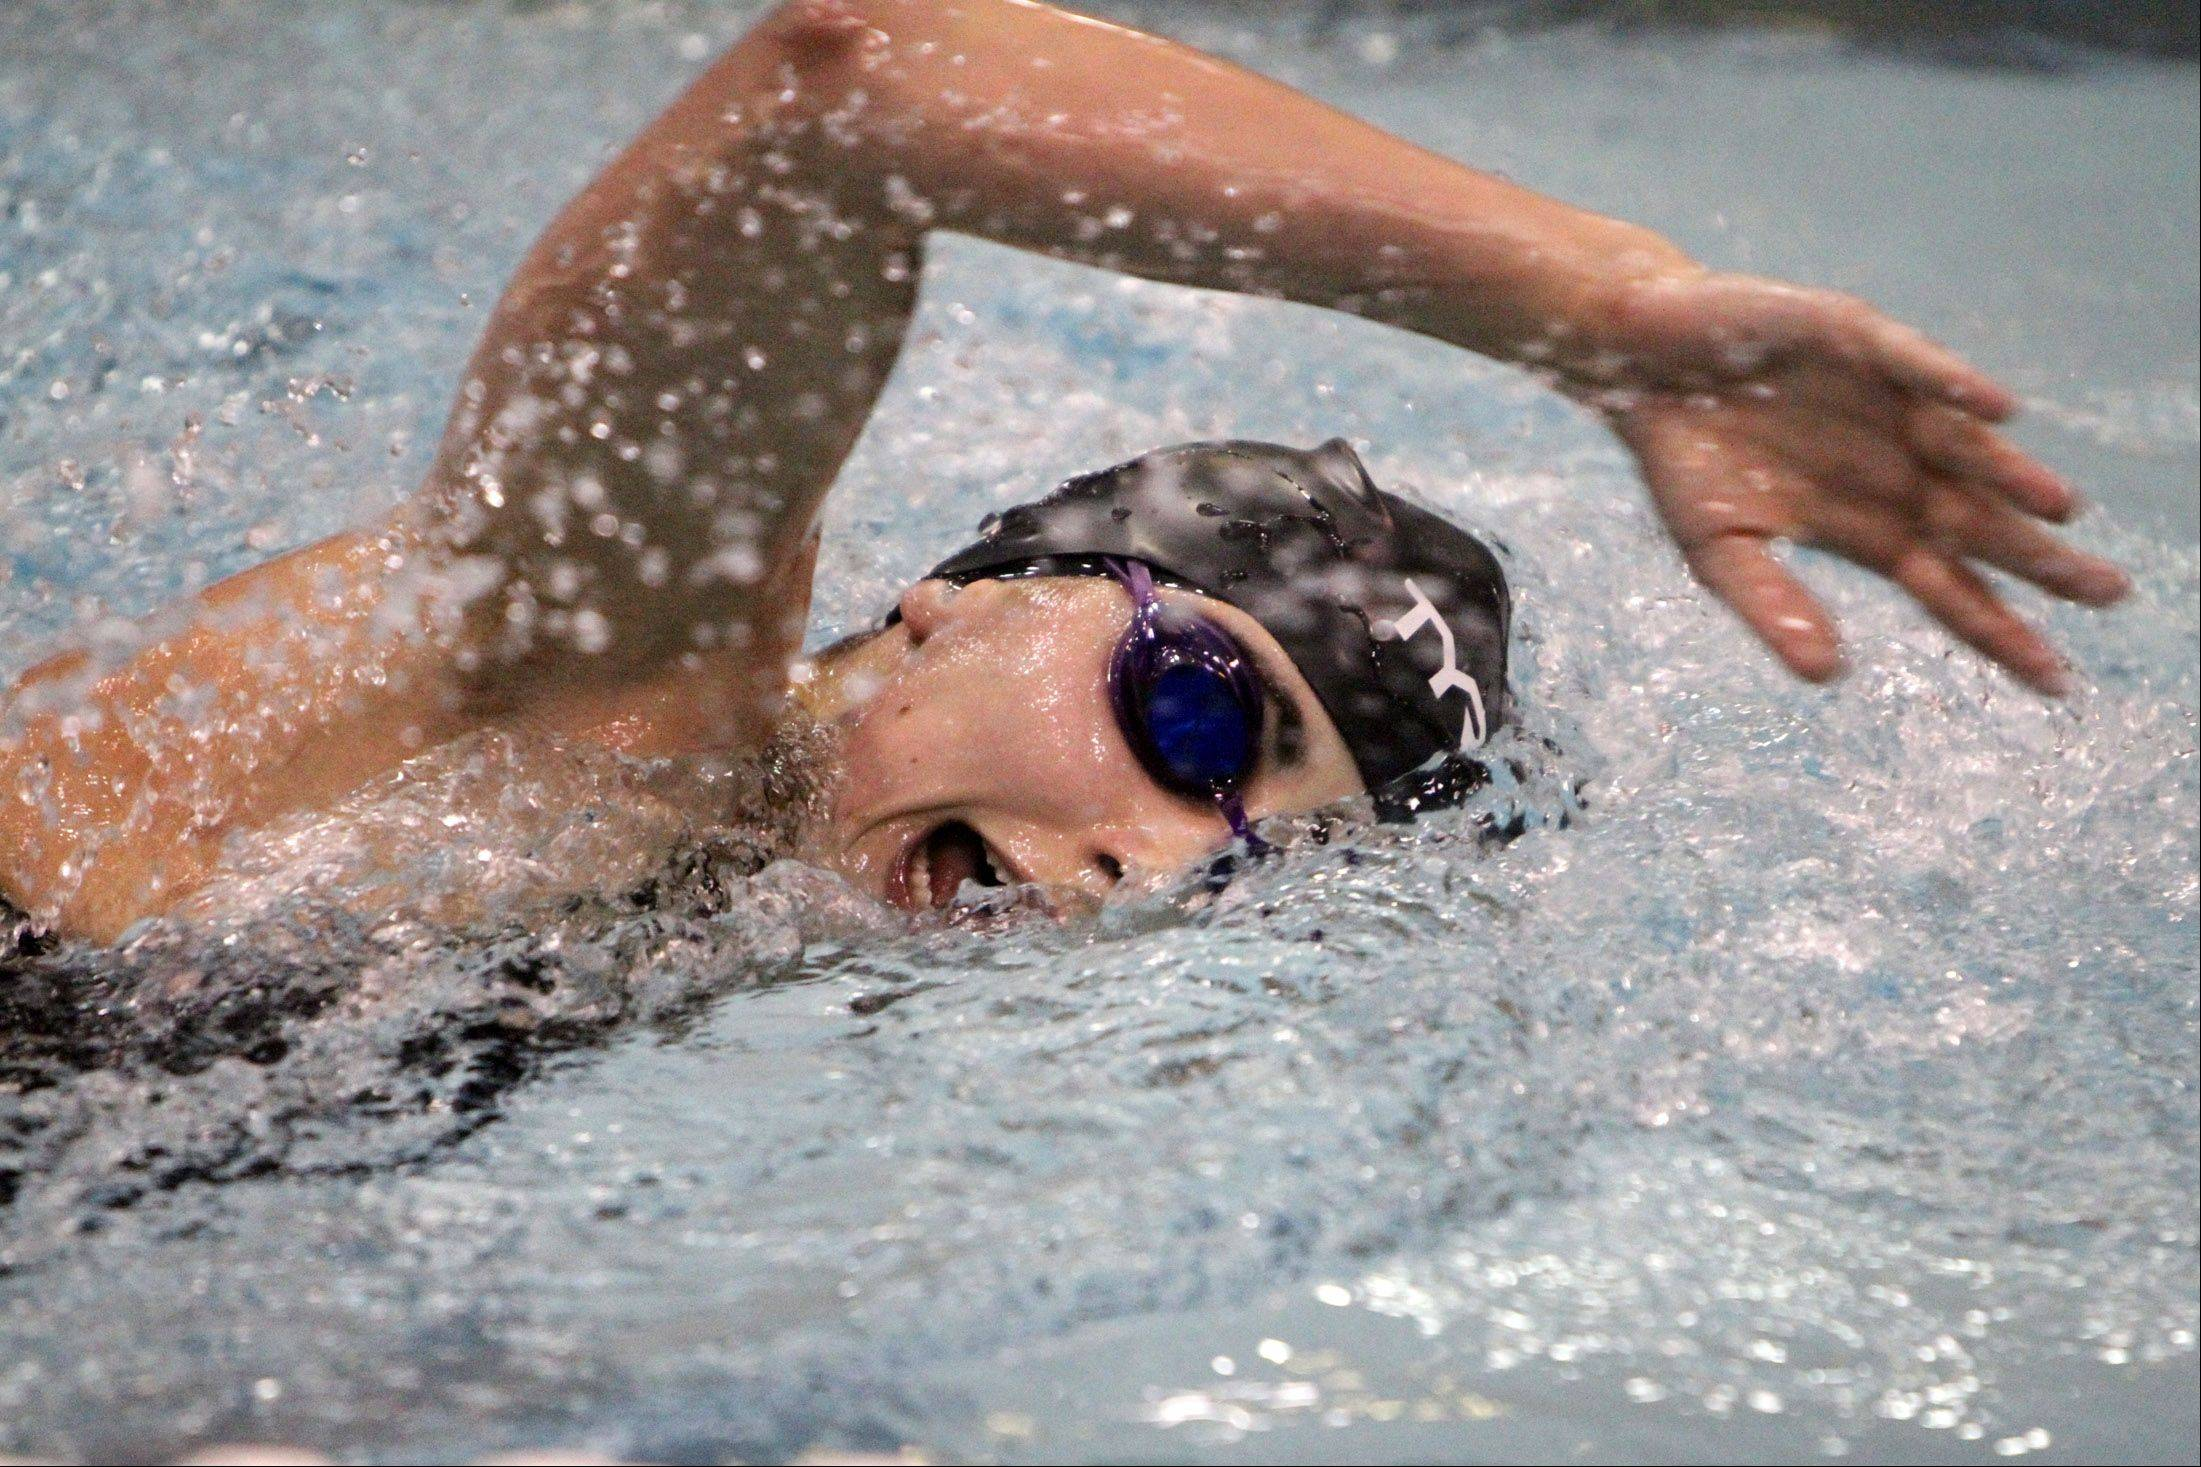 Naperville Central's Julia Roller finished fourth in the 500-yard freestyle with a time of 4:57.39 at the IHSA state final preliminaries in Winnetka on Friday, November 18th.